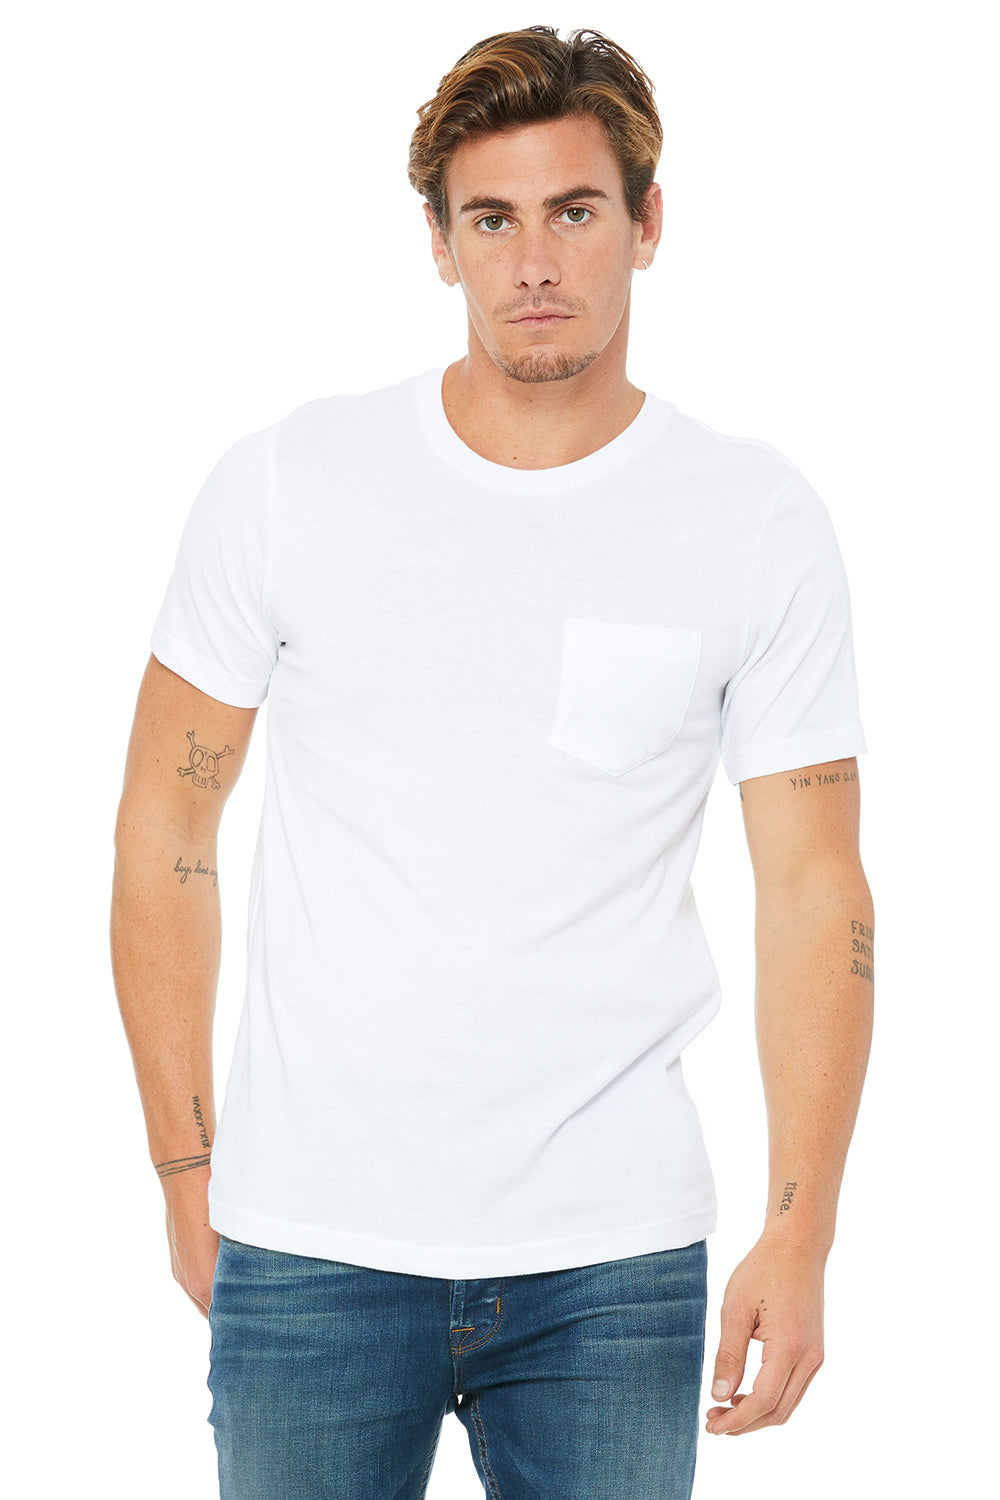 Bella + Canvas 3021 Mens Jersey Short Sleeve Crewneck T-Shirt w/ Pocket White Front